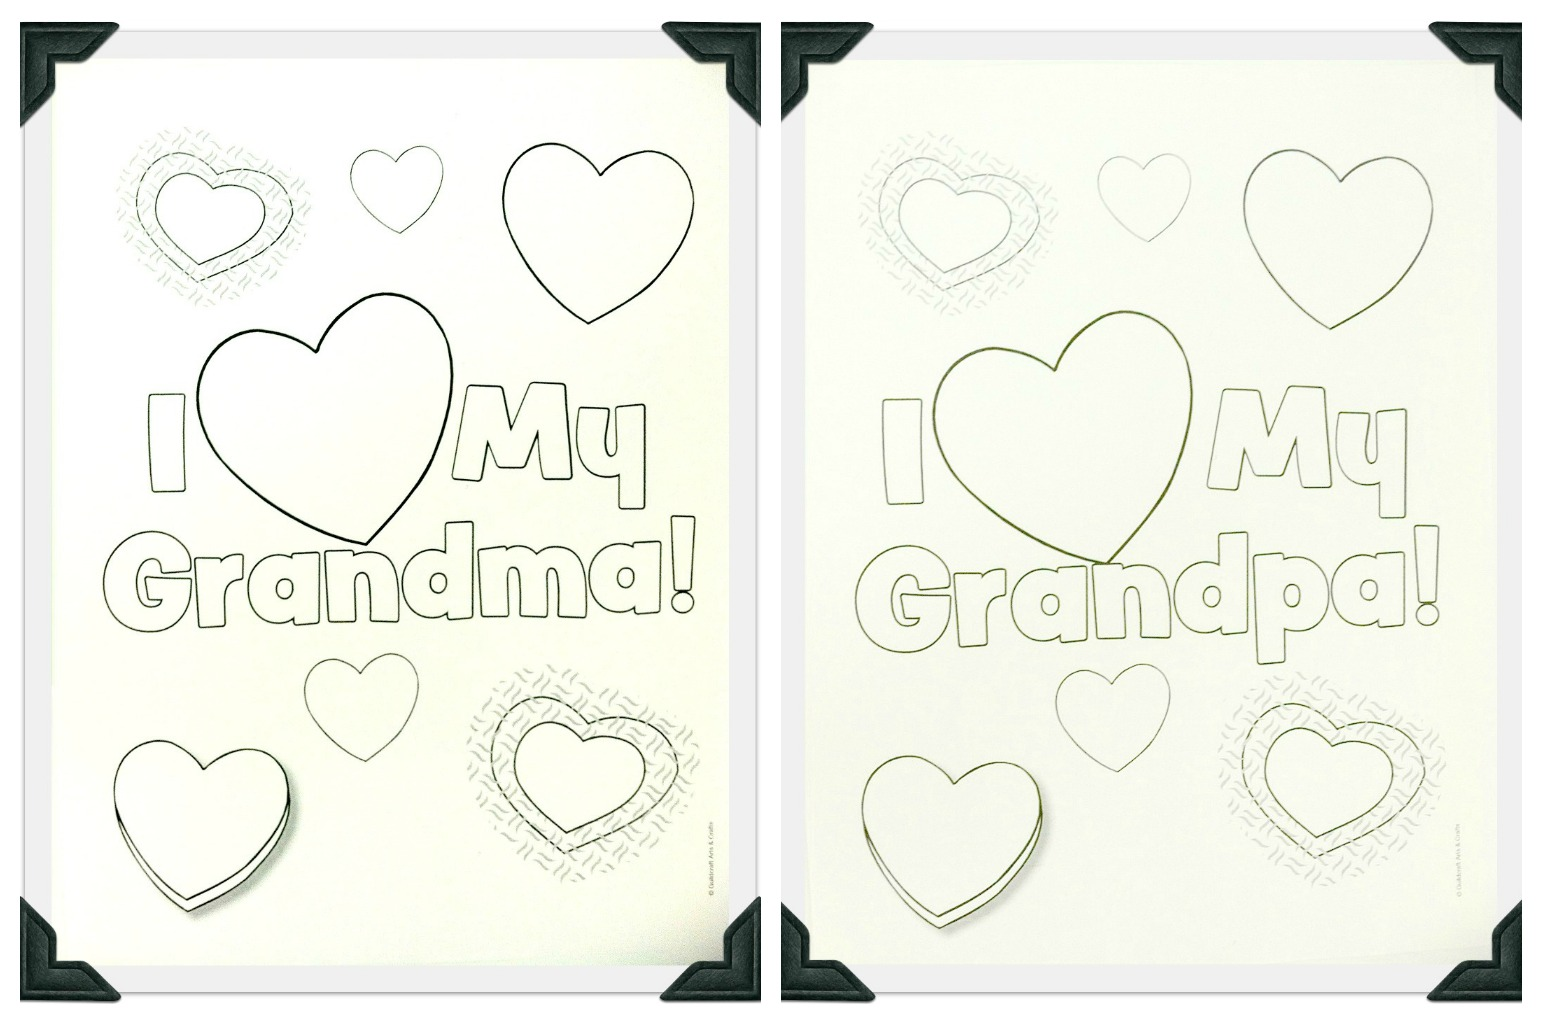 Happy Grandparents Day Coloring Pages 5 | Free Printable Coloring …